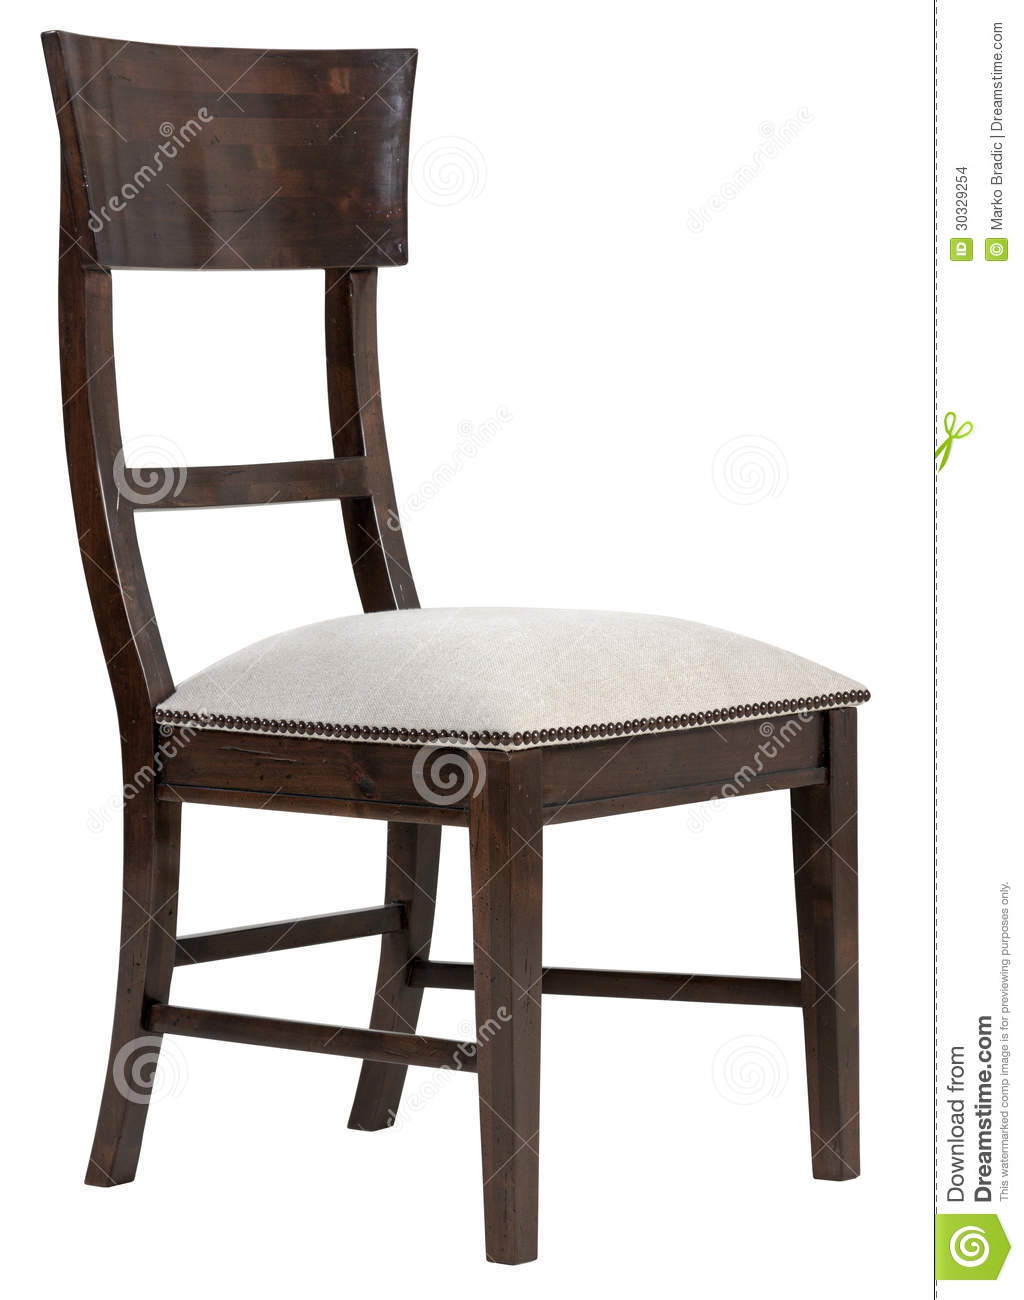 Elegant dining chair stock images image 30329254 for Elegant upholstered dining chairs